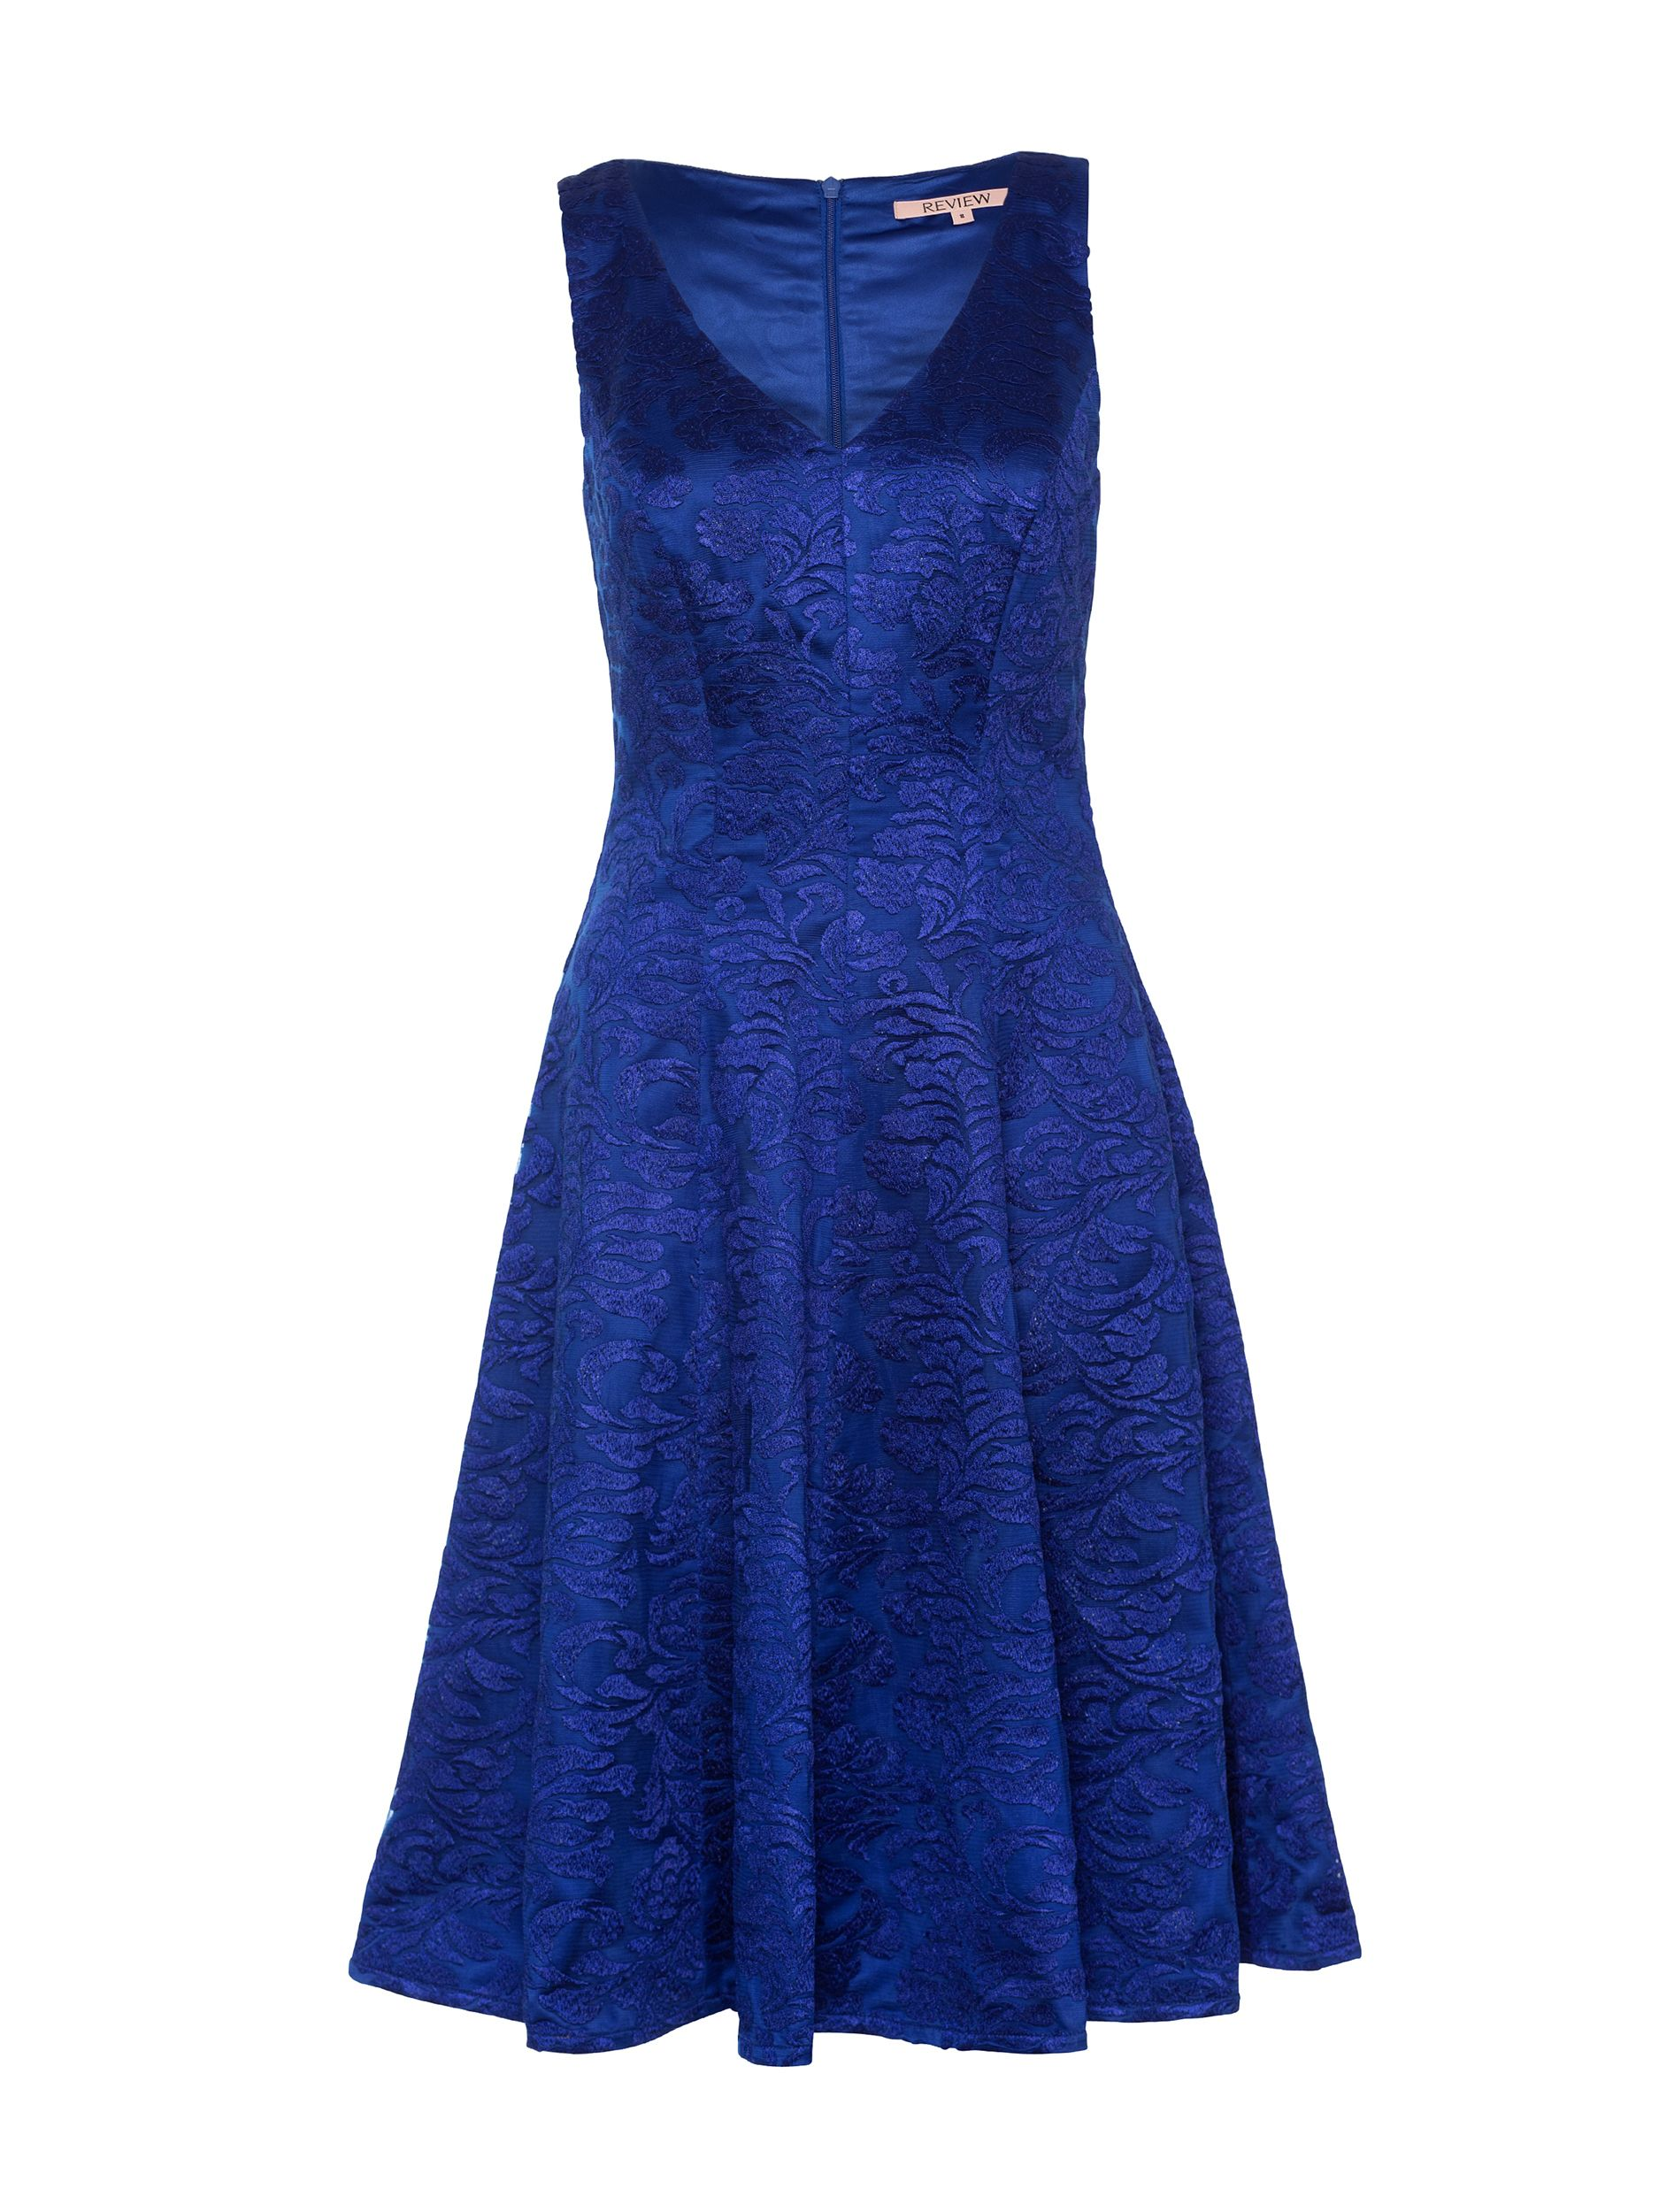 Strike a cutting figure with the Midnight River Dress, a